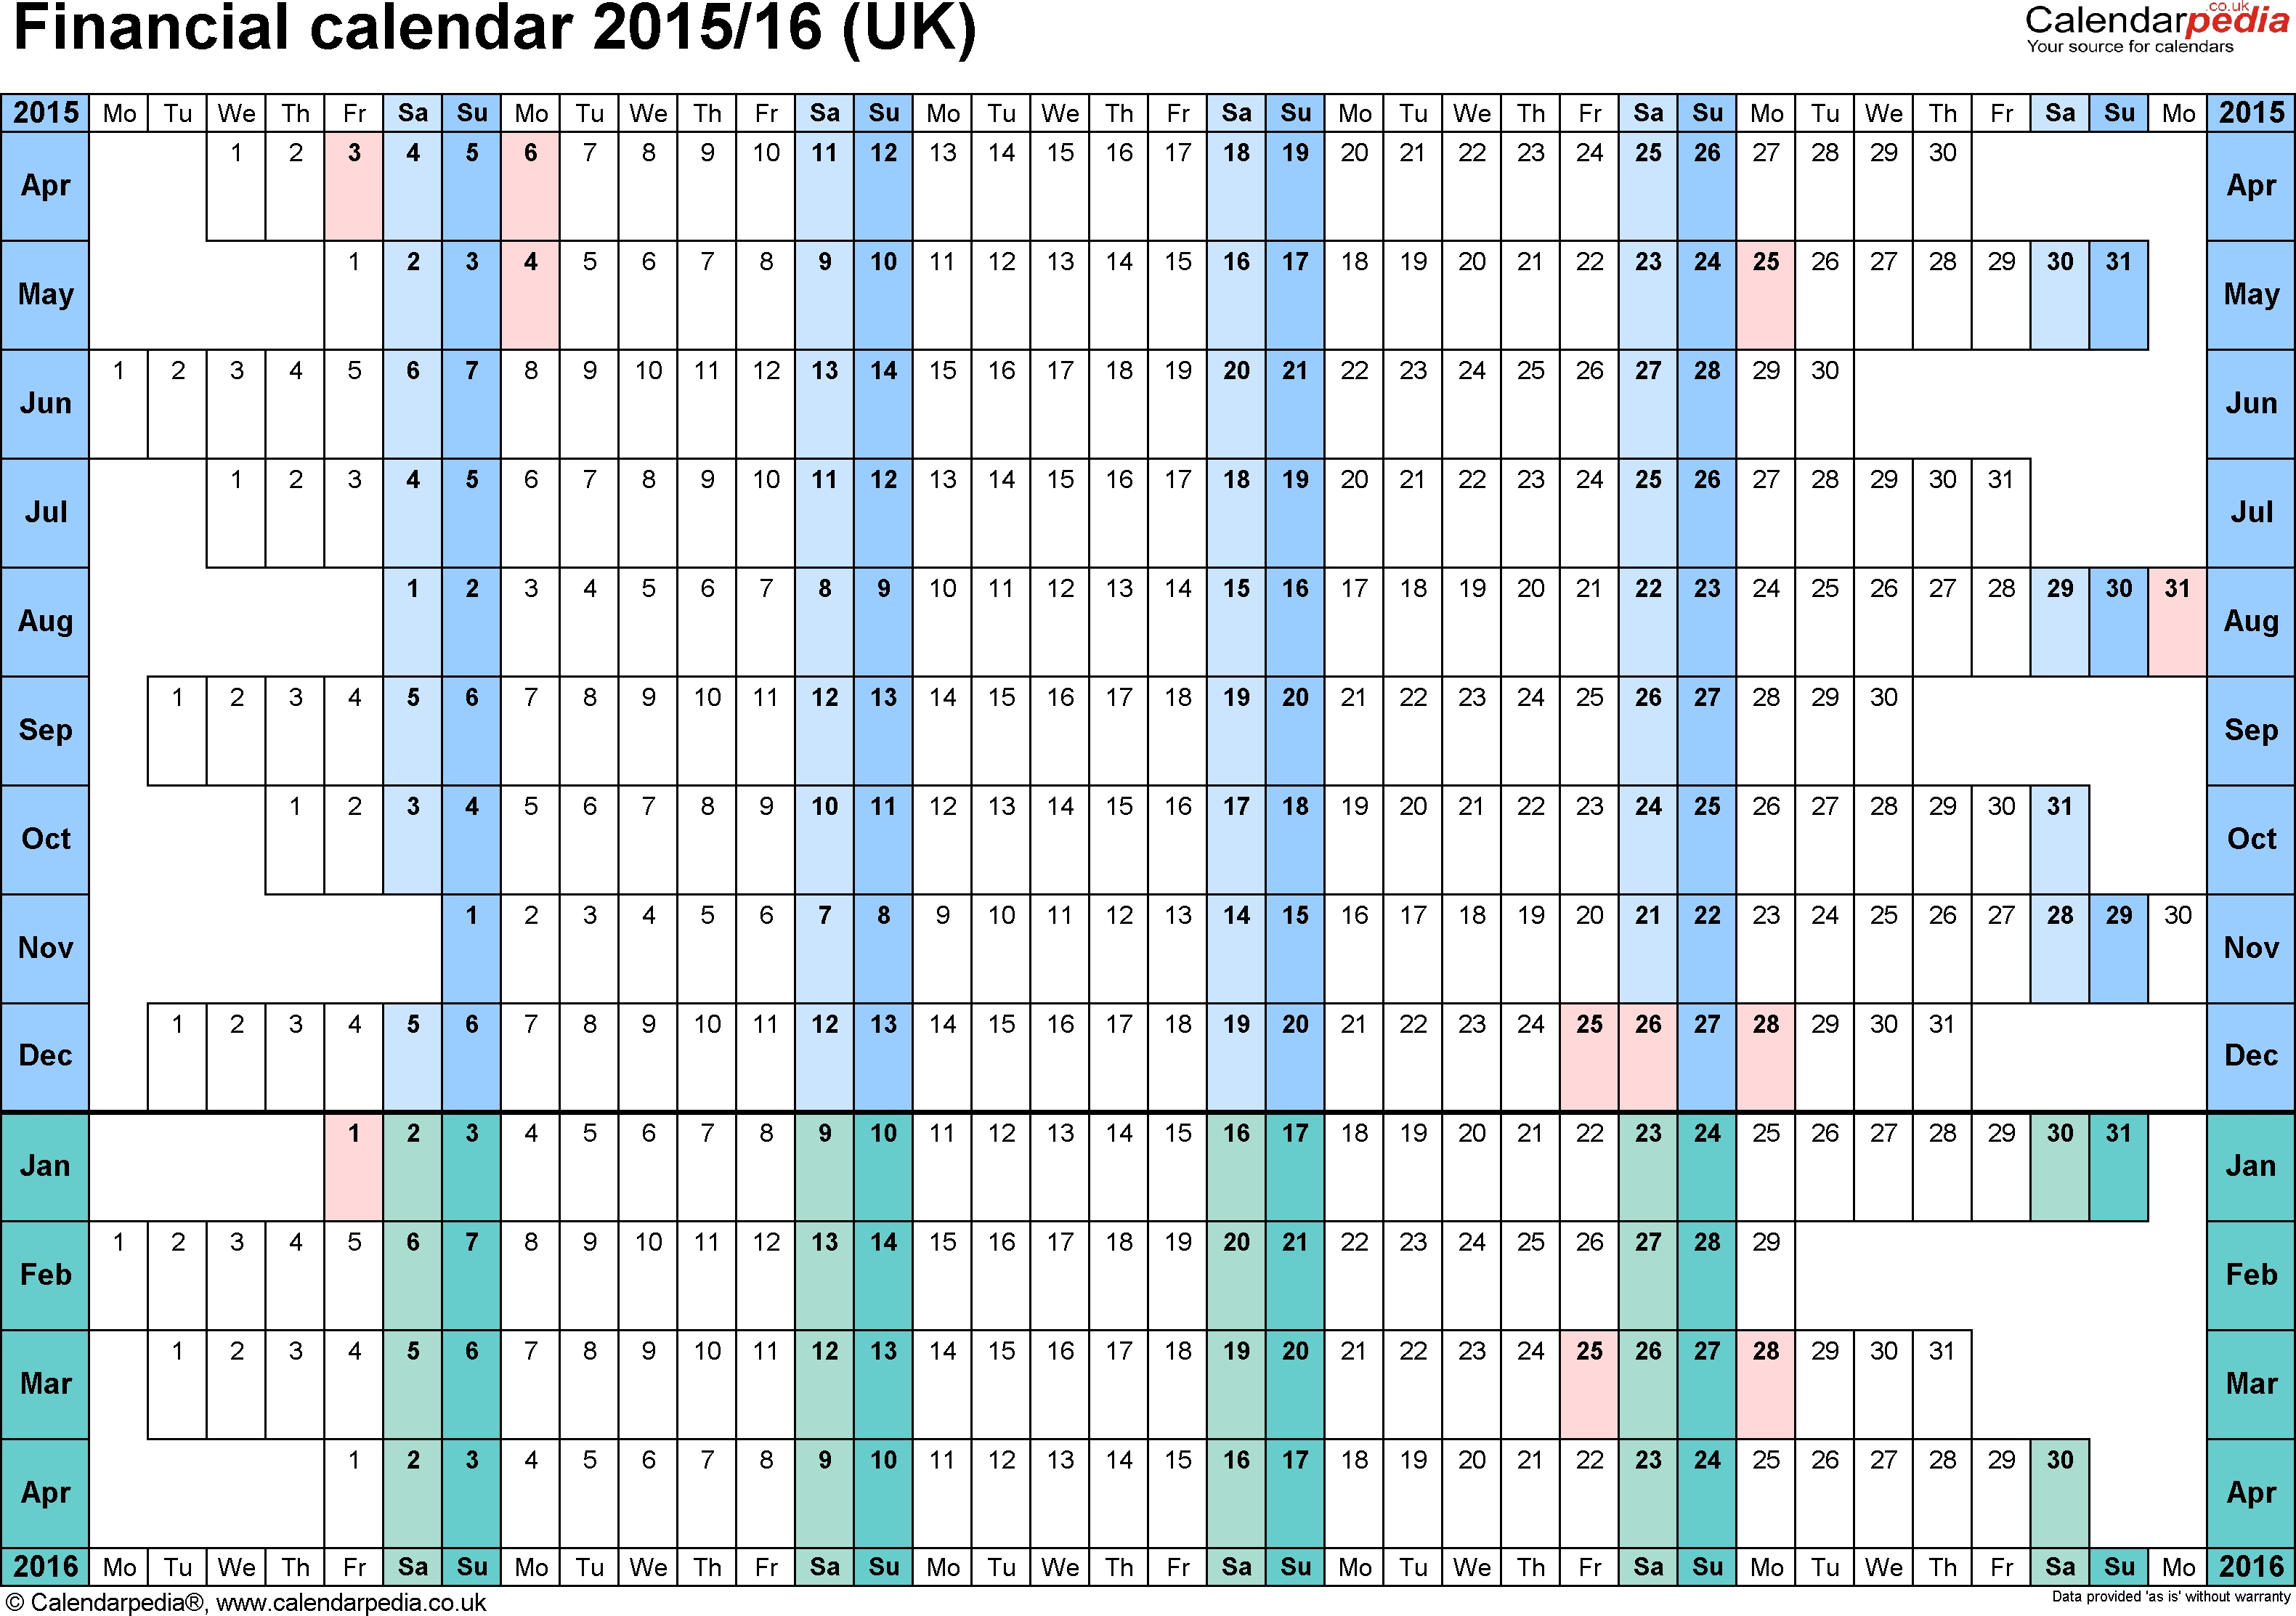 Financial Calendars 2015/16 (Uk) In Pdf Format intended for Hmrc Tax Week Calendar 2019 2020